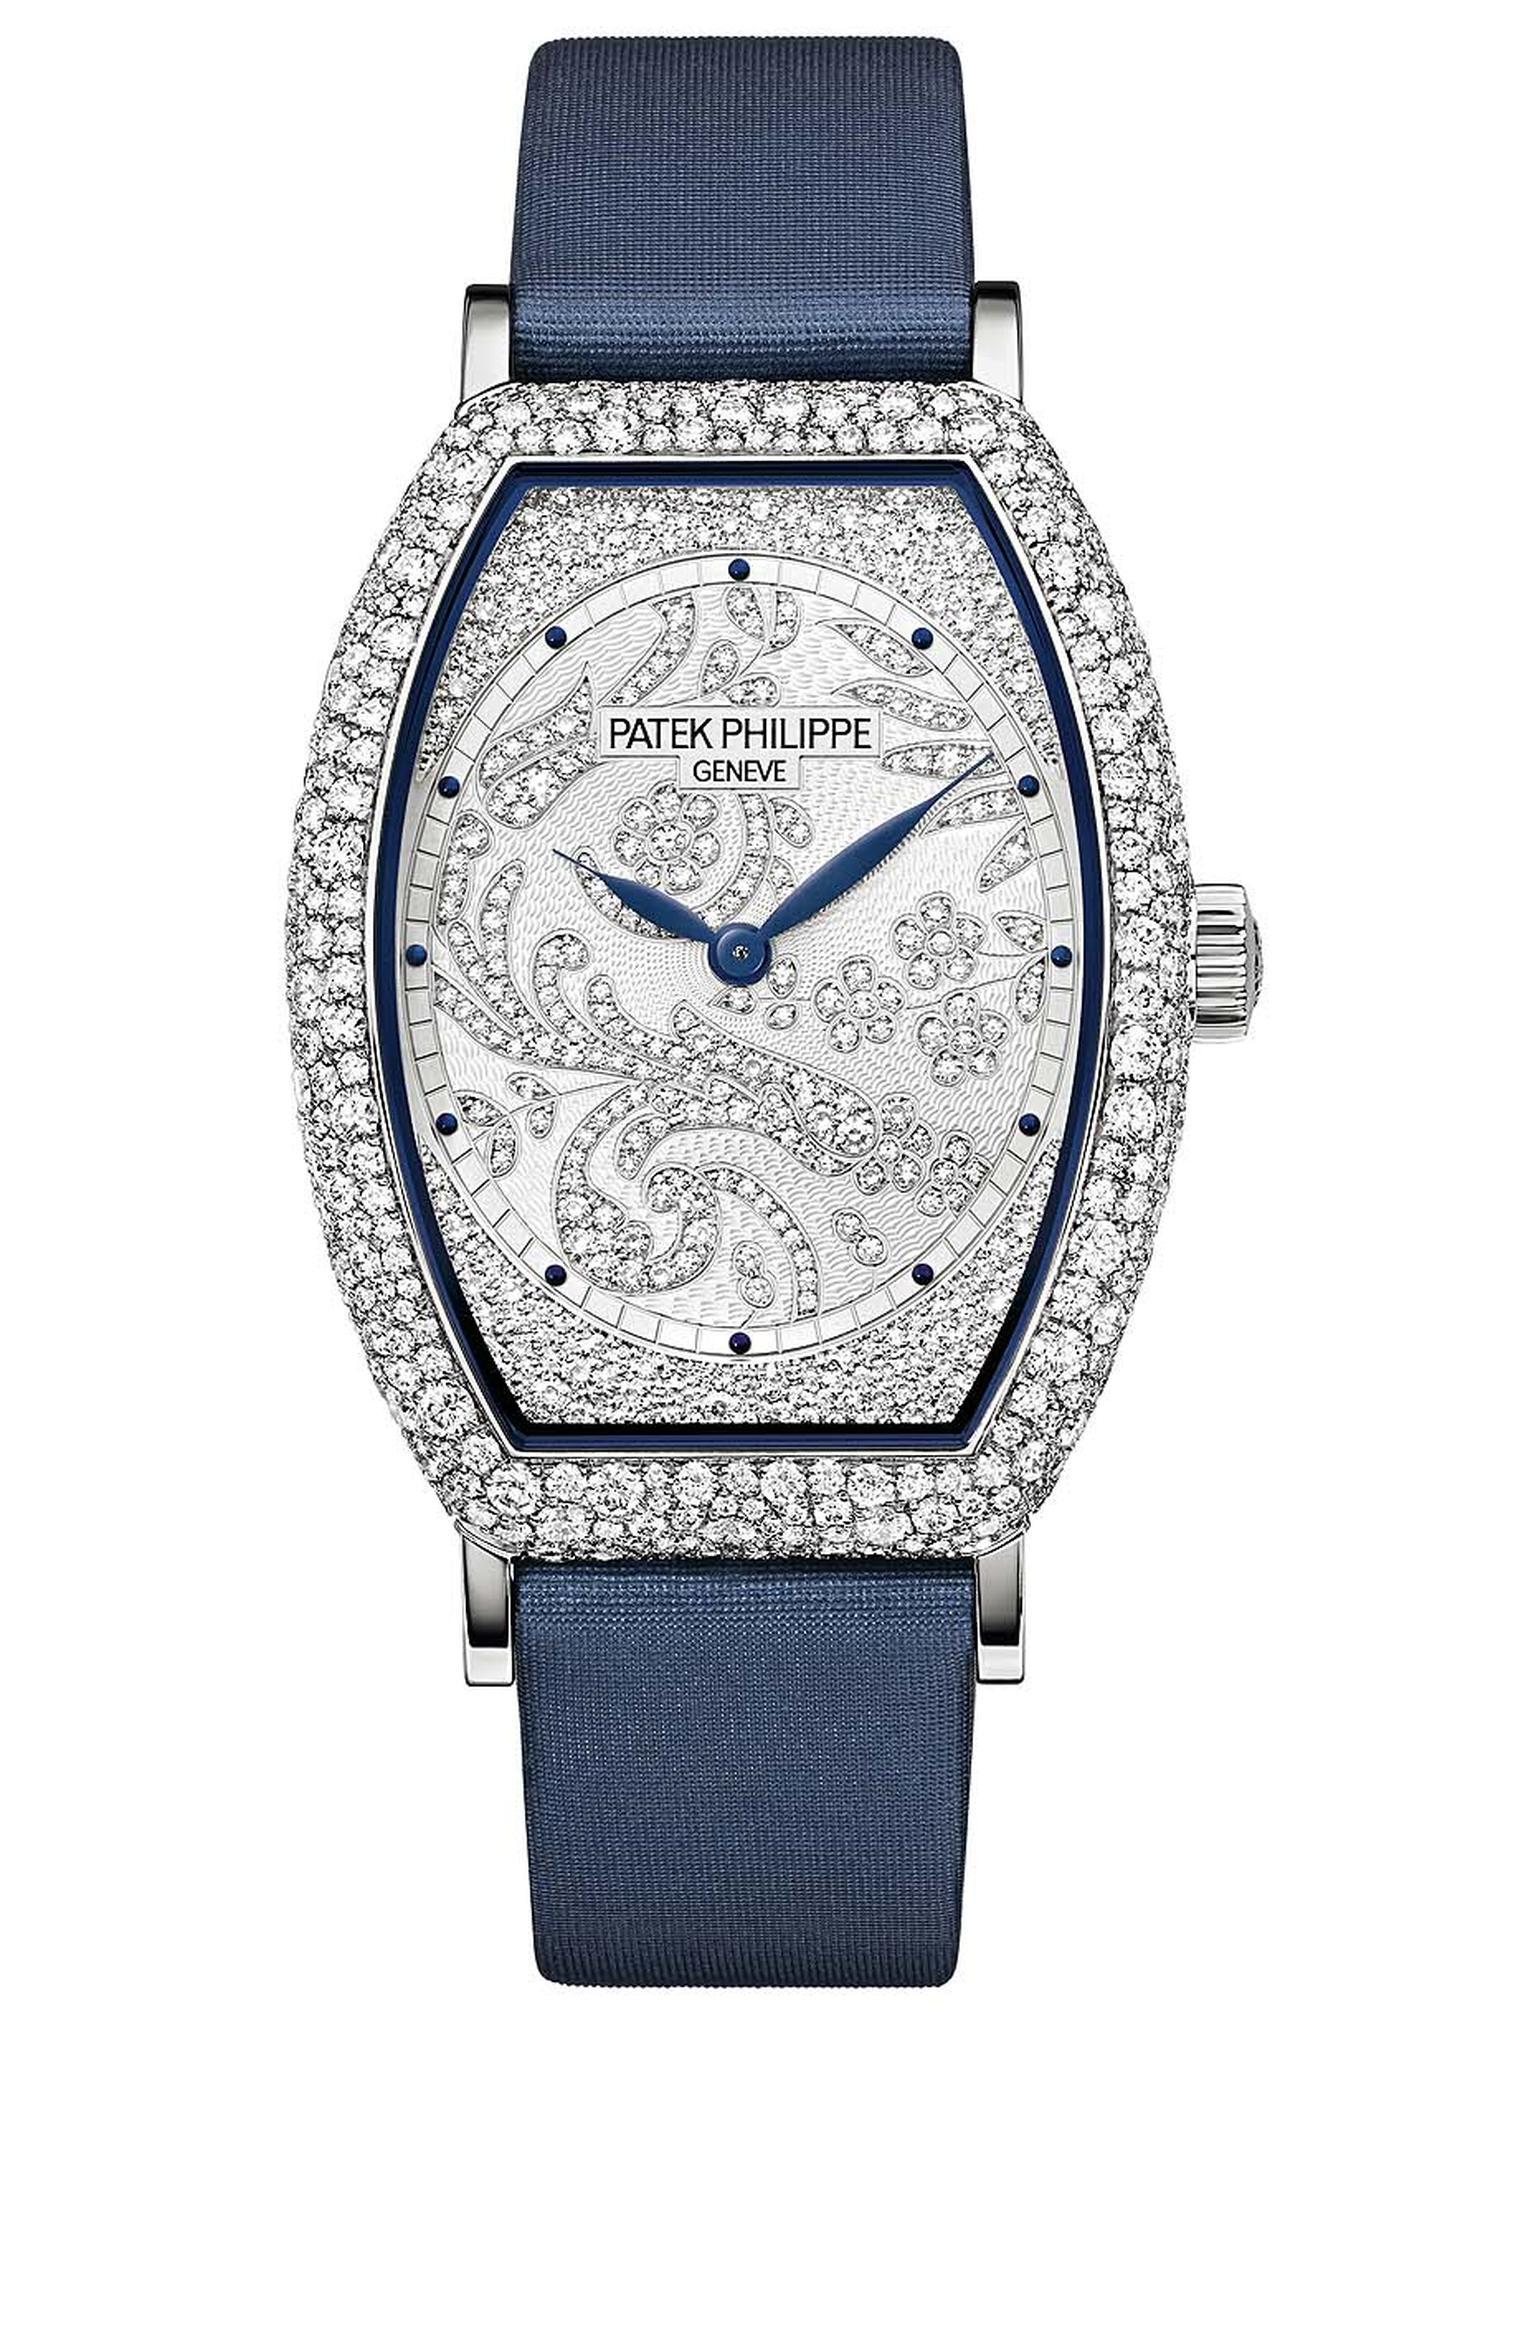 Inspired by the clean lines of Art Deco, this year's Gondolo Ref. 7099 has an icy white gold case decorated with a floral tapestry of diamonds.